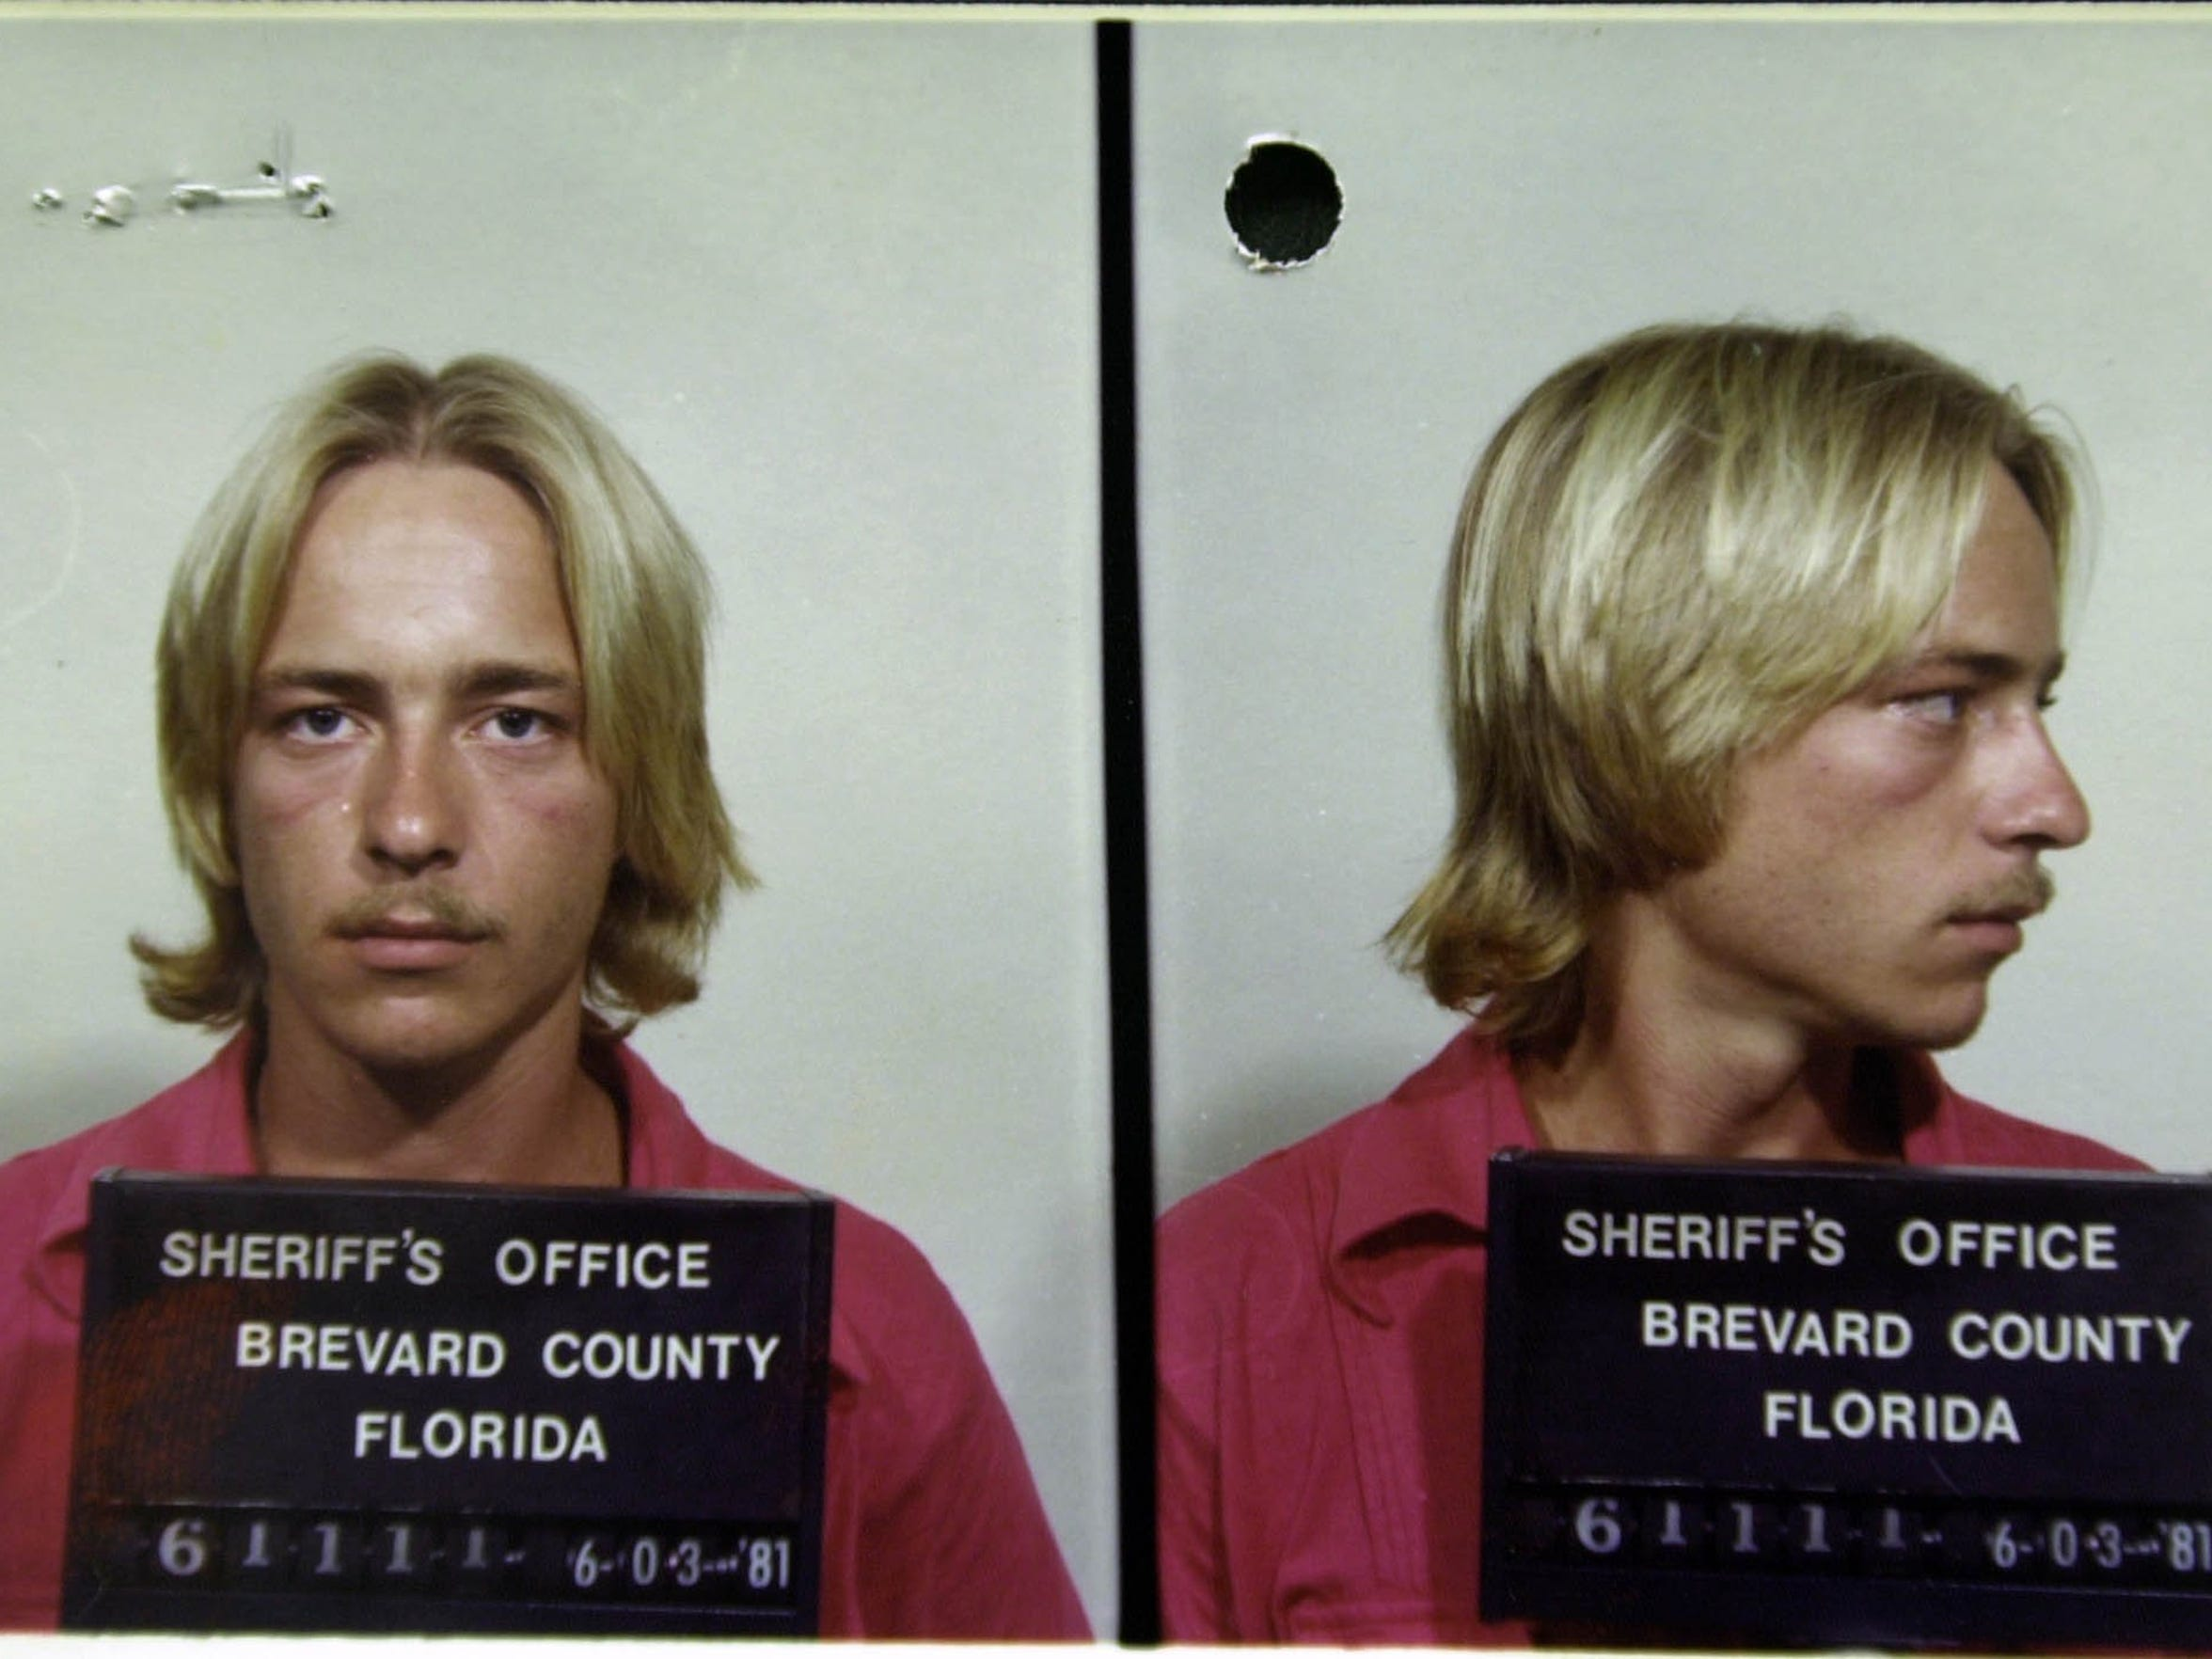 FILE: 6/23/00--This is a sheriff's department photo of Wilton Dedge, who was arrested and convicted of rape in 1984. He recently asked a judge to have his DNA tested from evidence used in the case and the judge has granted his request.